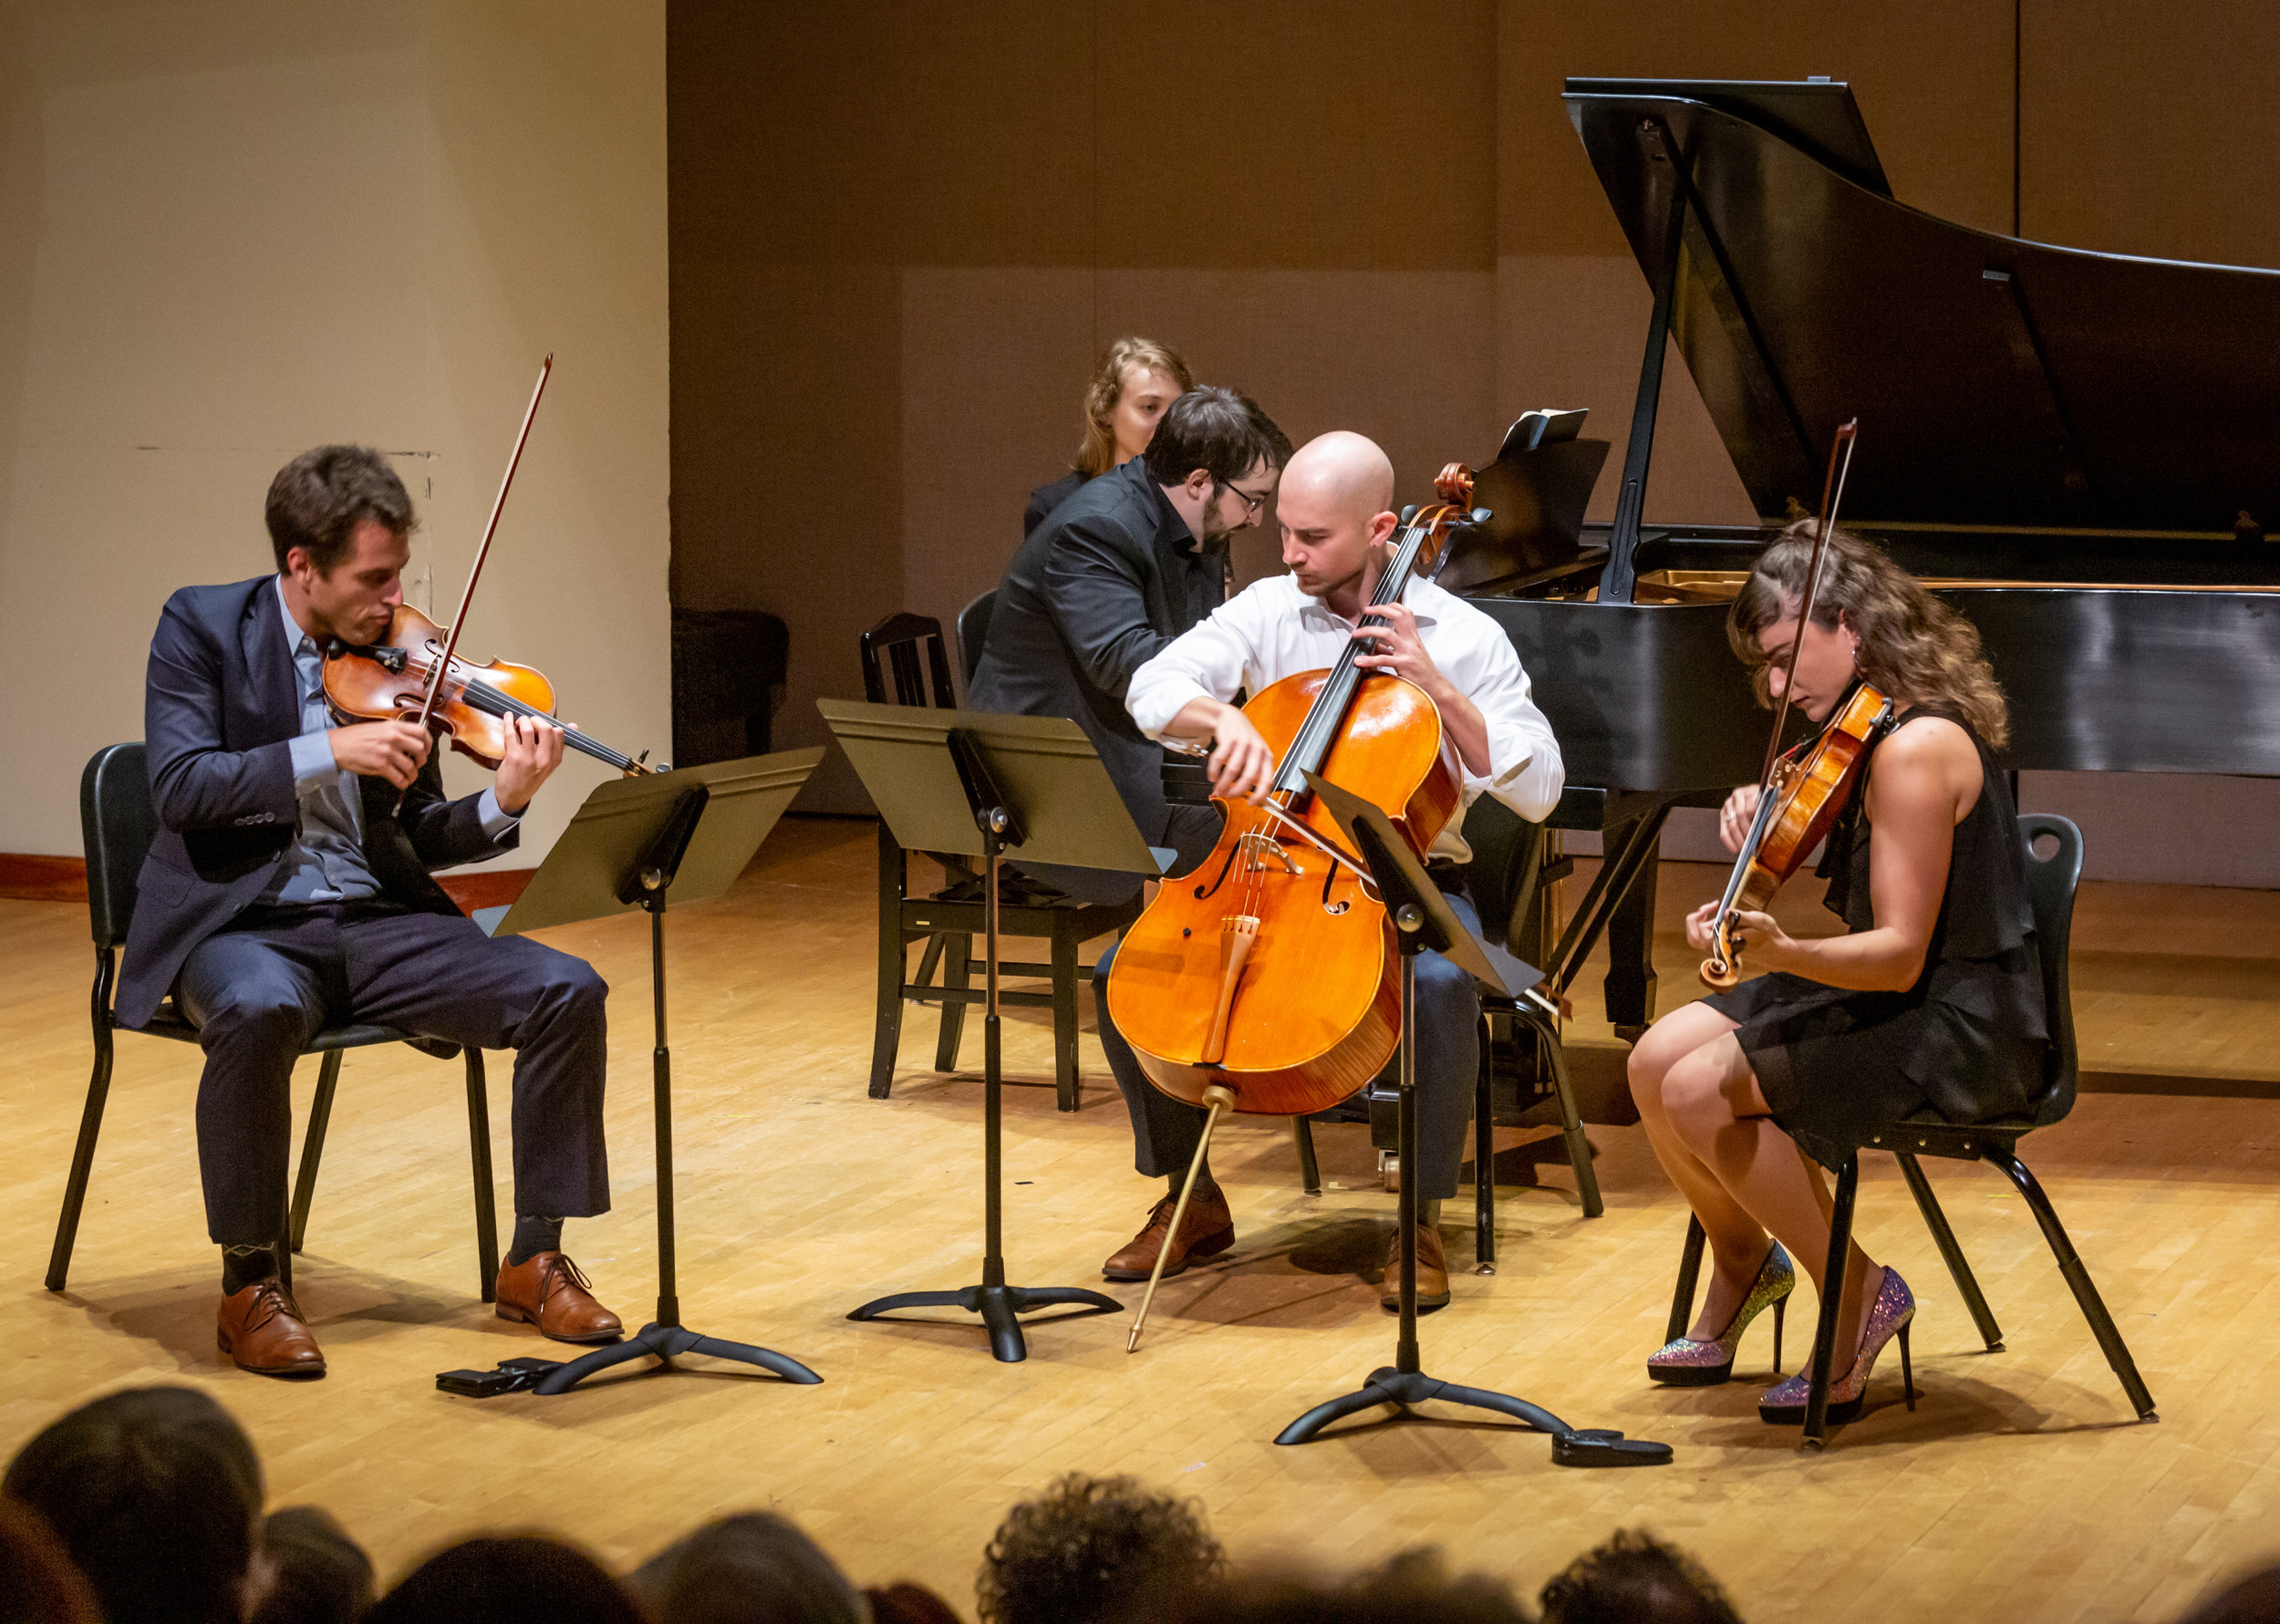 L-R: Joel Link, Charles Richard-Hamelin, Camden Shaw and Milena Pajaro-van de Stadt. Photo by James Ireland